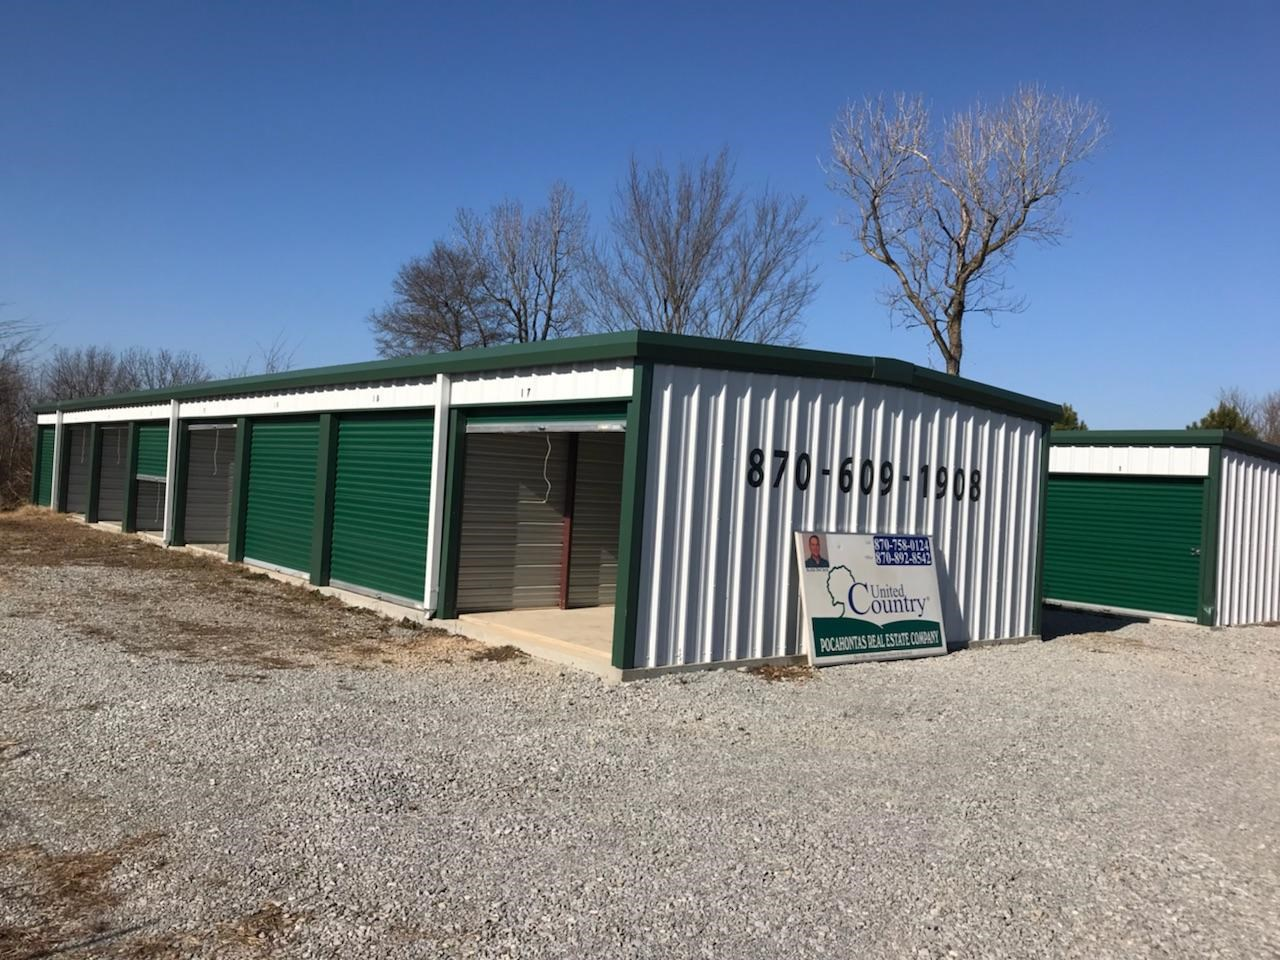 Investment Property in Pocahontas, Arkansas For Sale